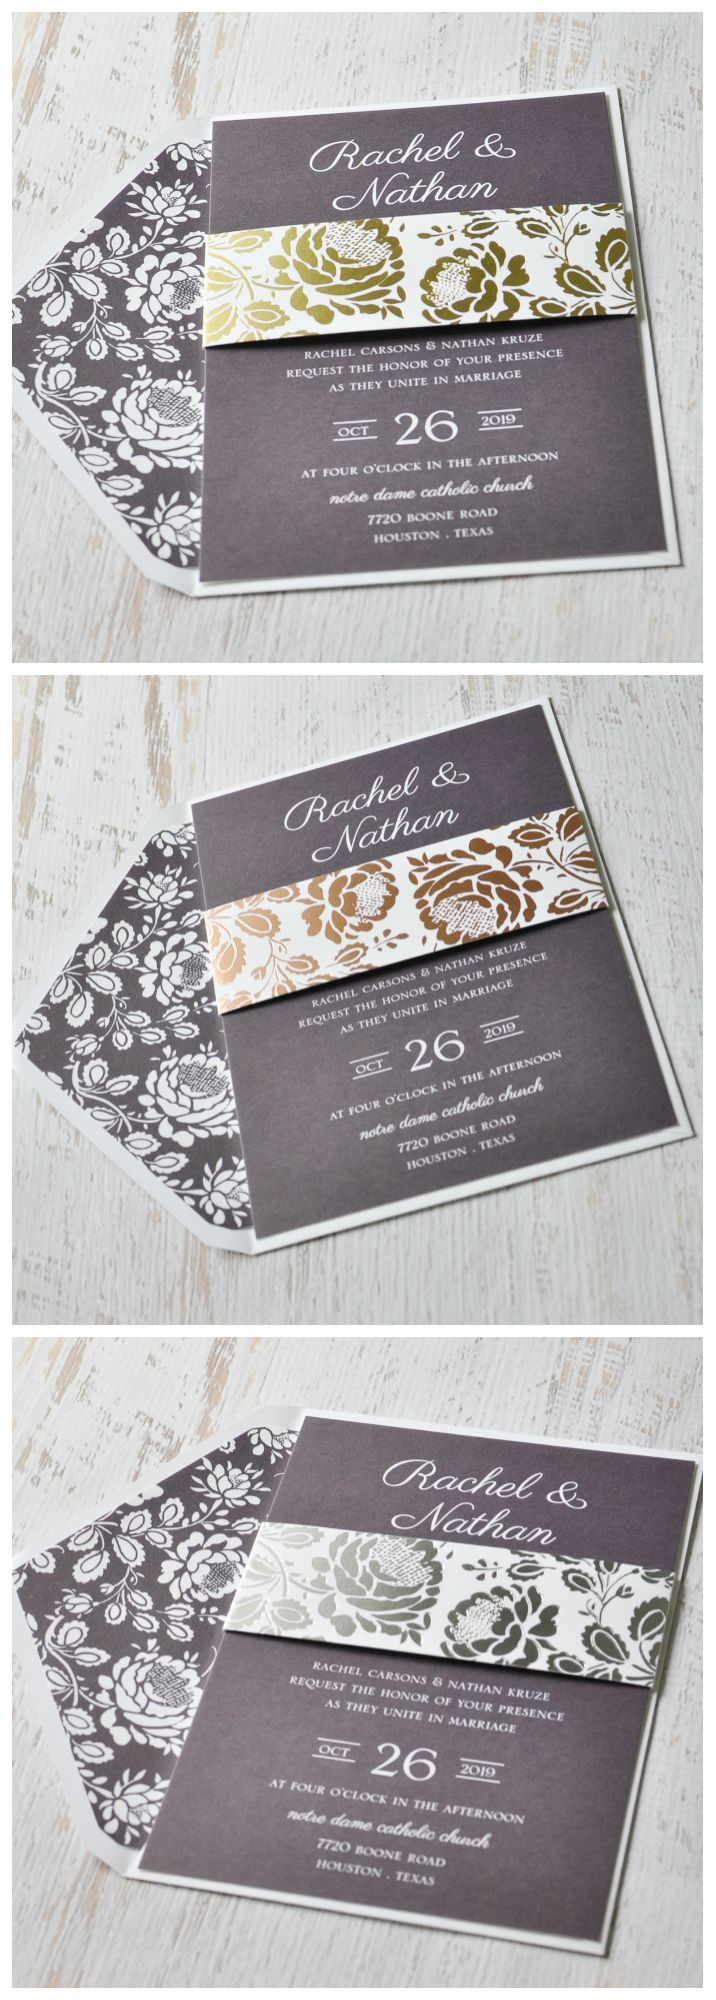 Vintage Flair Foil Invitation 887 best